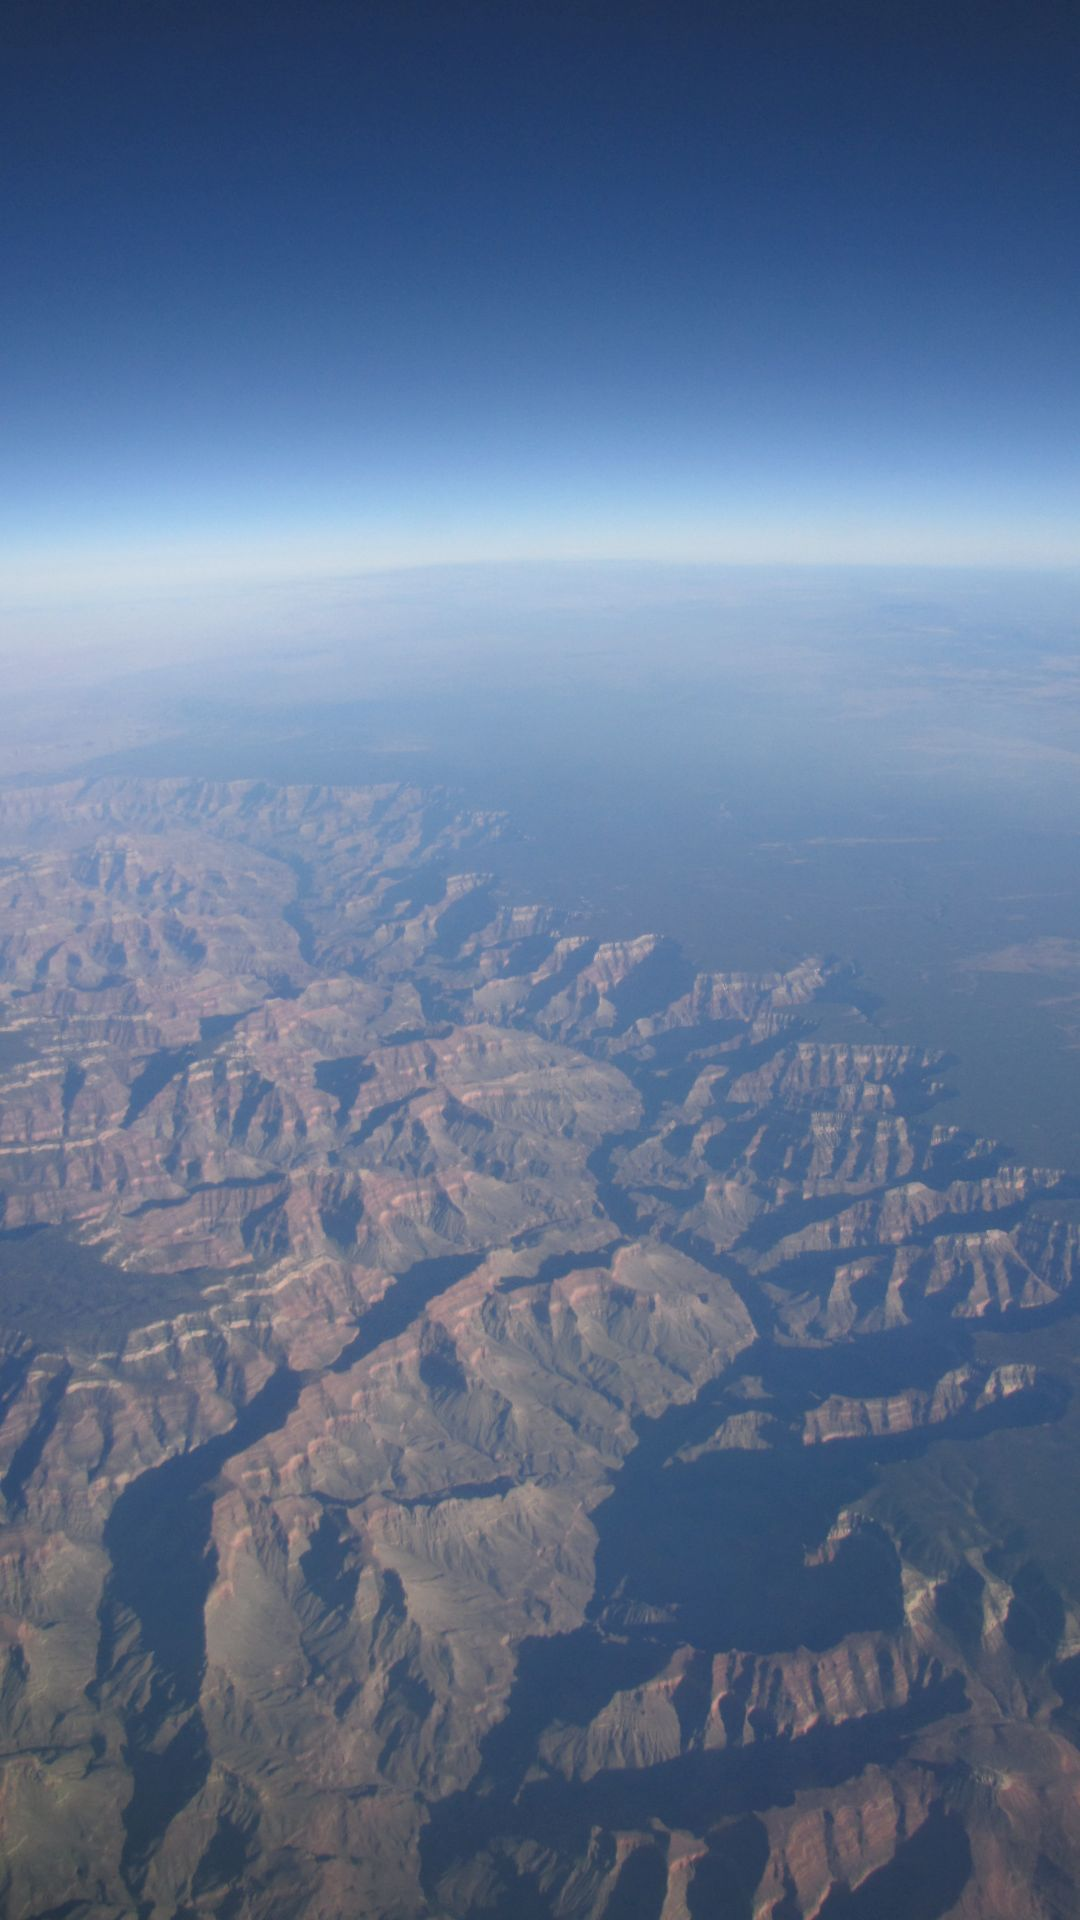 Yes, I am 5 years old, taking pictures from the plane to LA (oooh look, you can see the curve of the earth!)